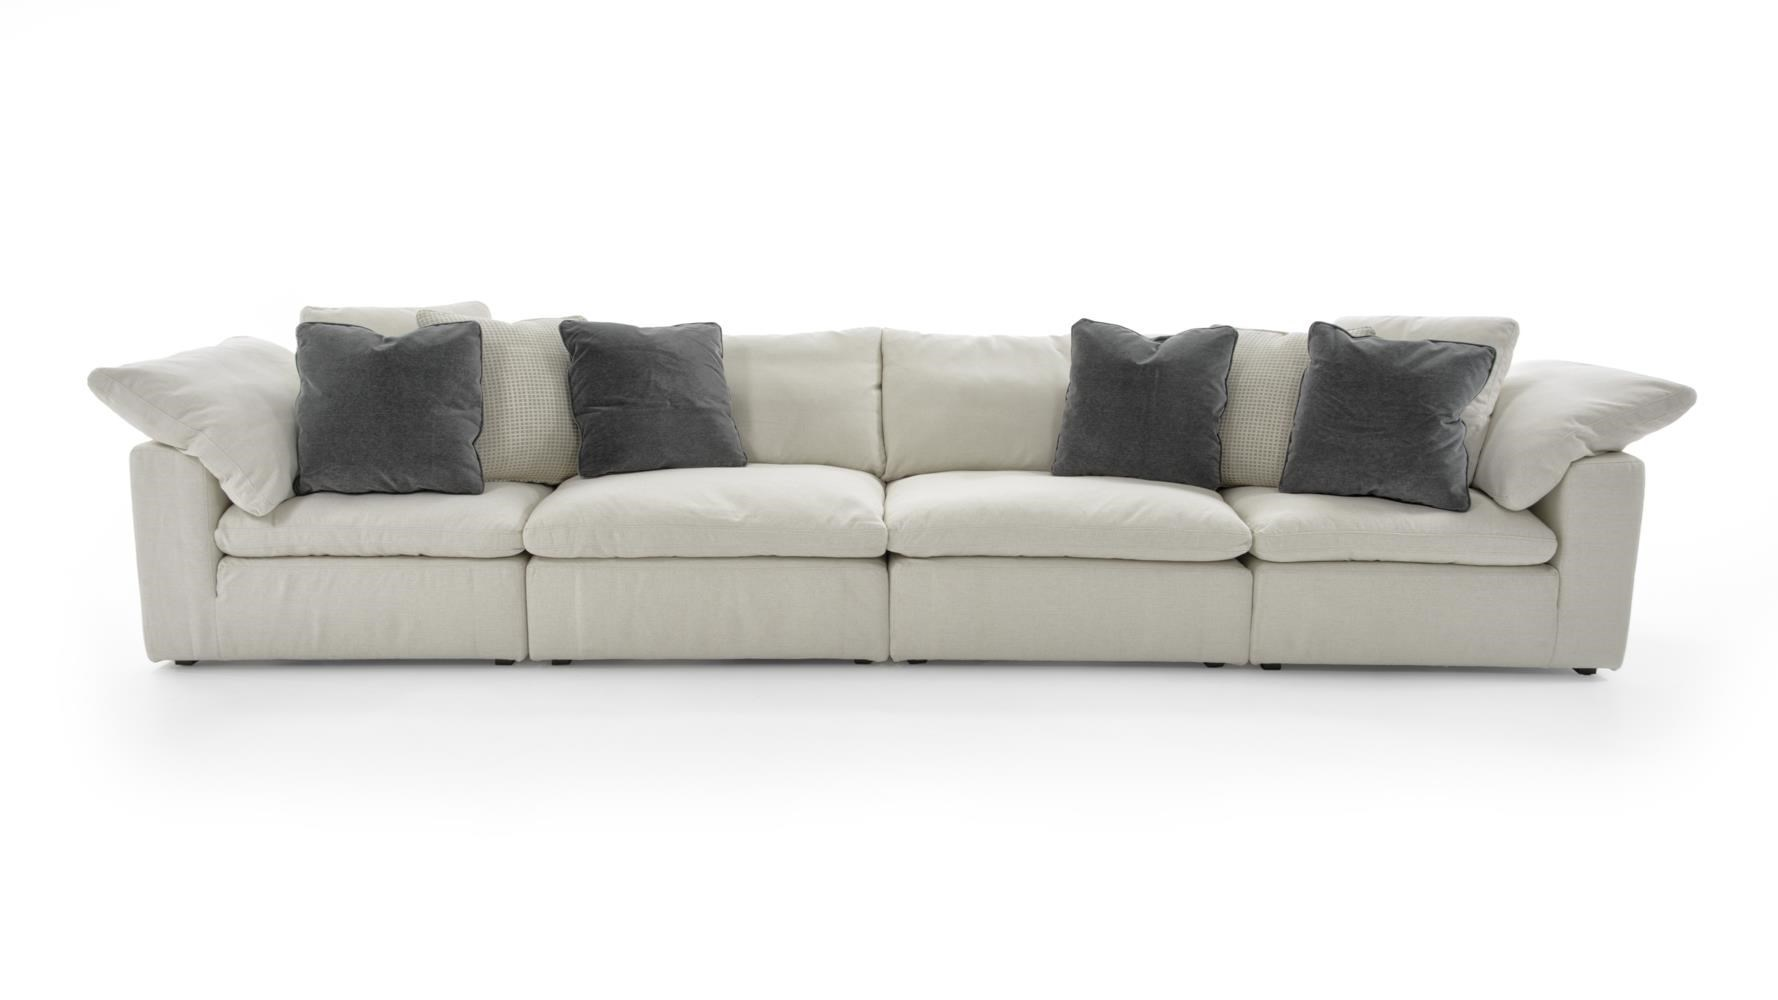 ashley furniture palmer sofa beds made in melbourne thesofa